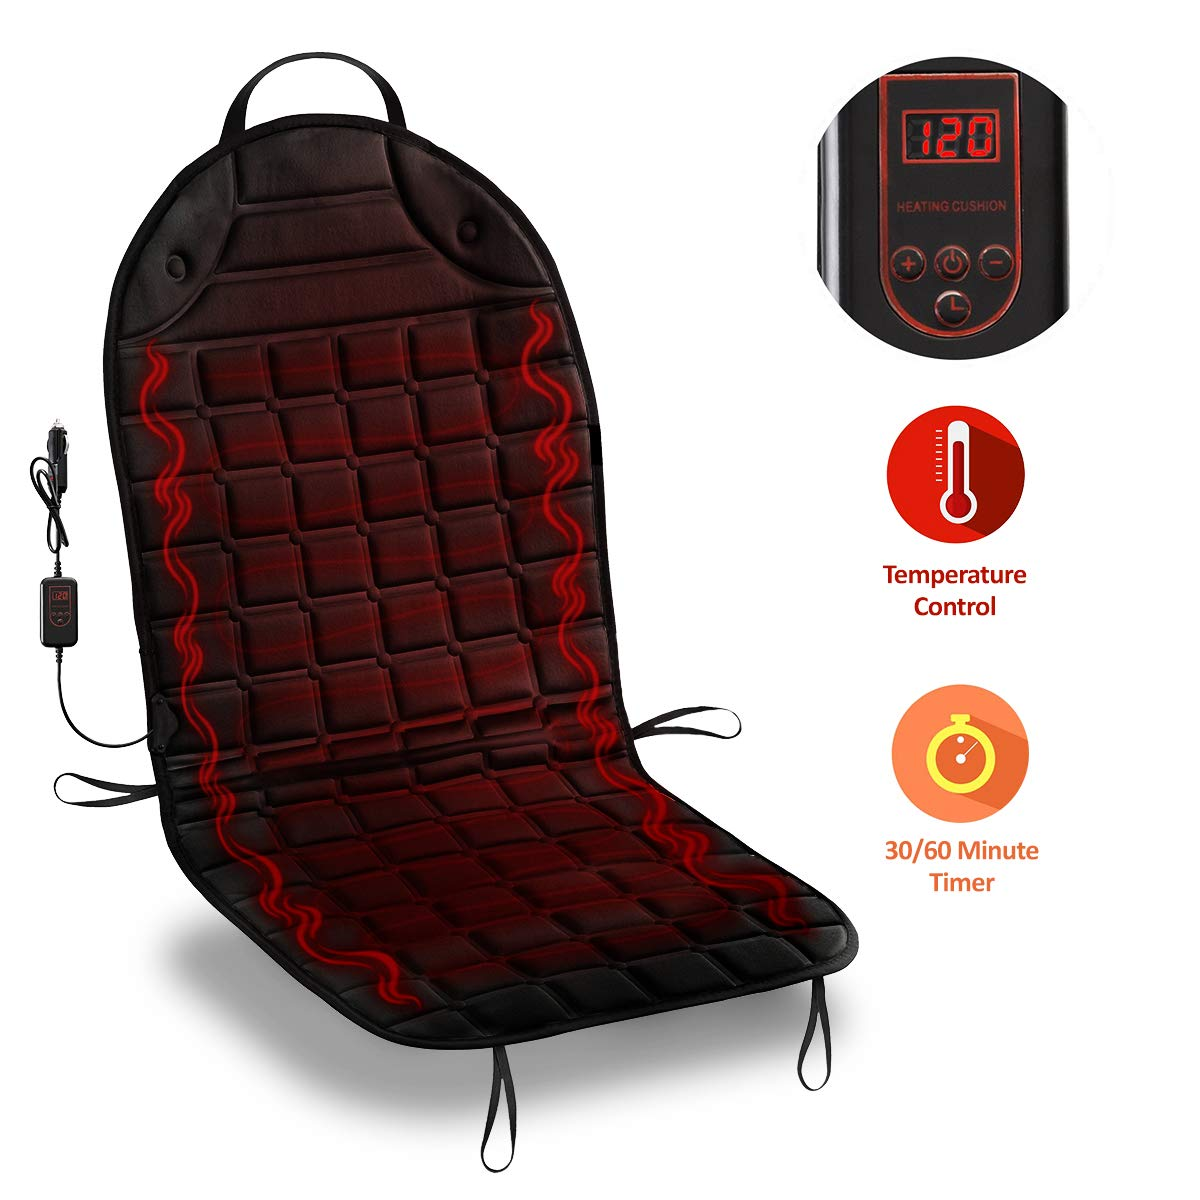 Zone Tech Car Heated Seat Cover Cushion Hot Warmer - 12V Classic Black Heating Warmer Pad Hot Cover Perfect for Cold Weather and Winter Driving